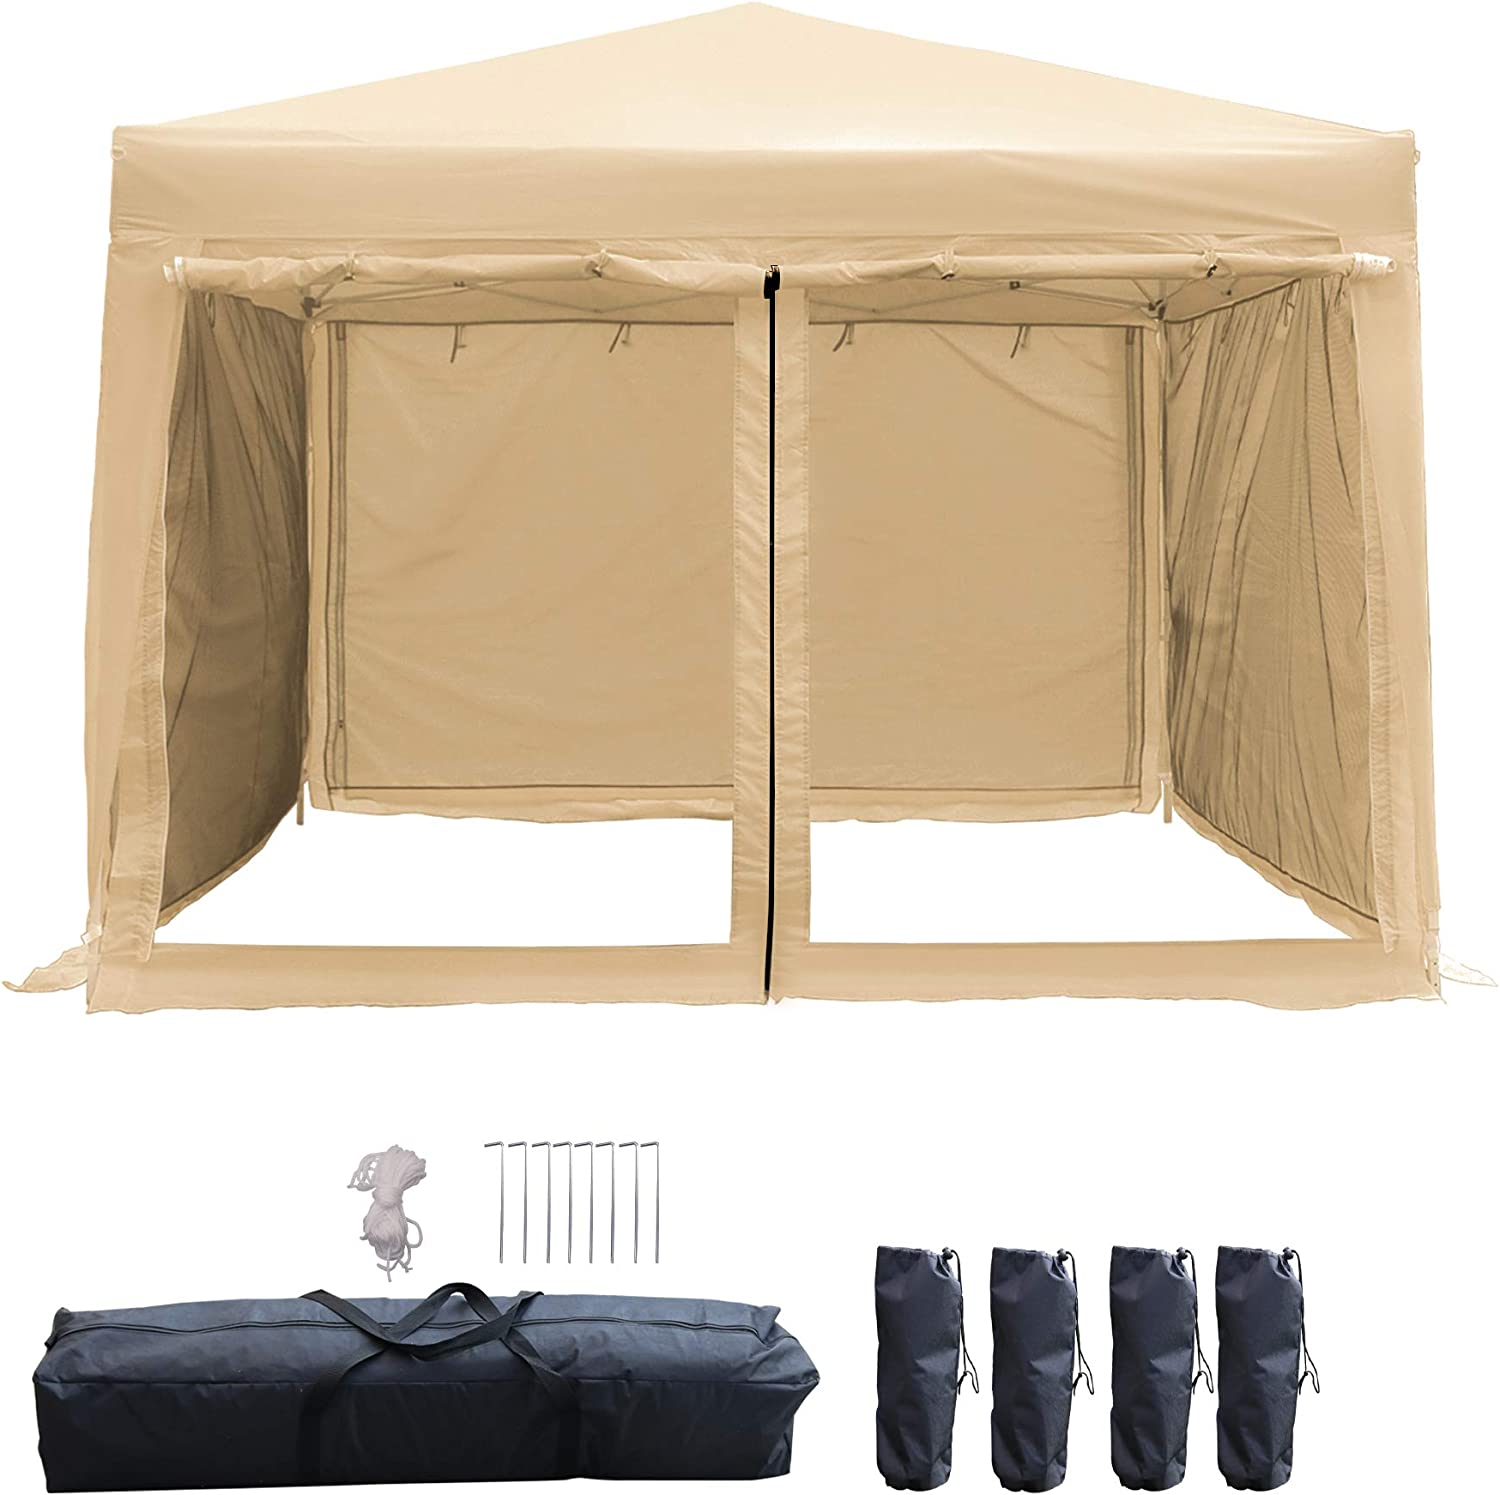 LAZZO 10x10ft Pop up Canopy Tent, Portable Commercial Outdoor Canopy Shelter with Carry Bag, 4 Removable Sidewall Contain Mesh Wall, 4 Weight Bags Without Sand, 8Stakes&4Ropes, Beige